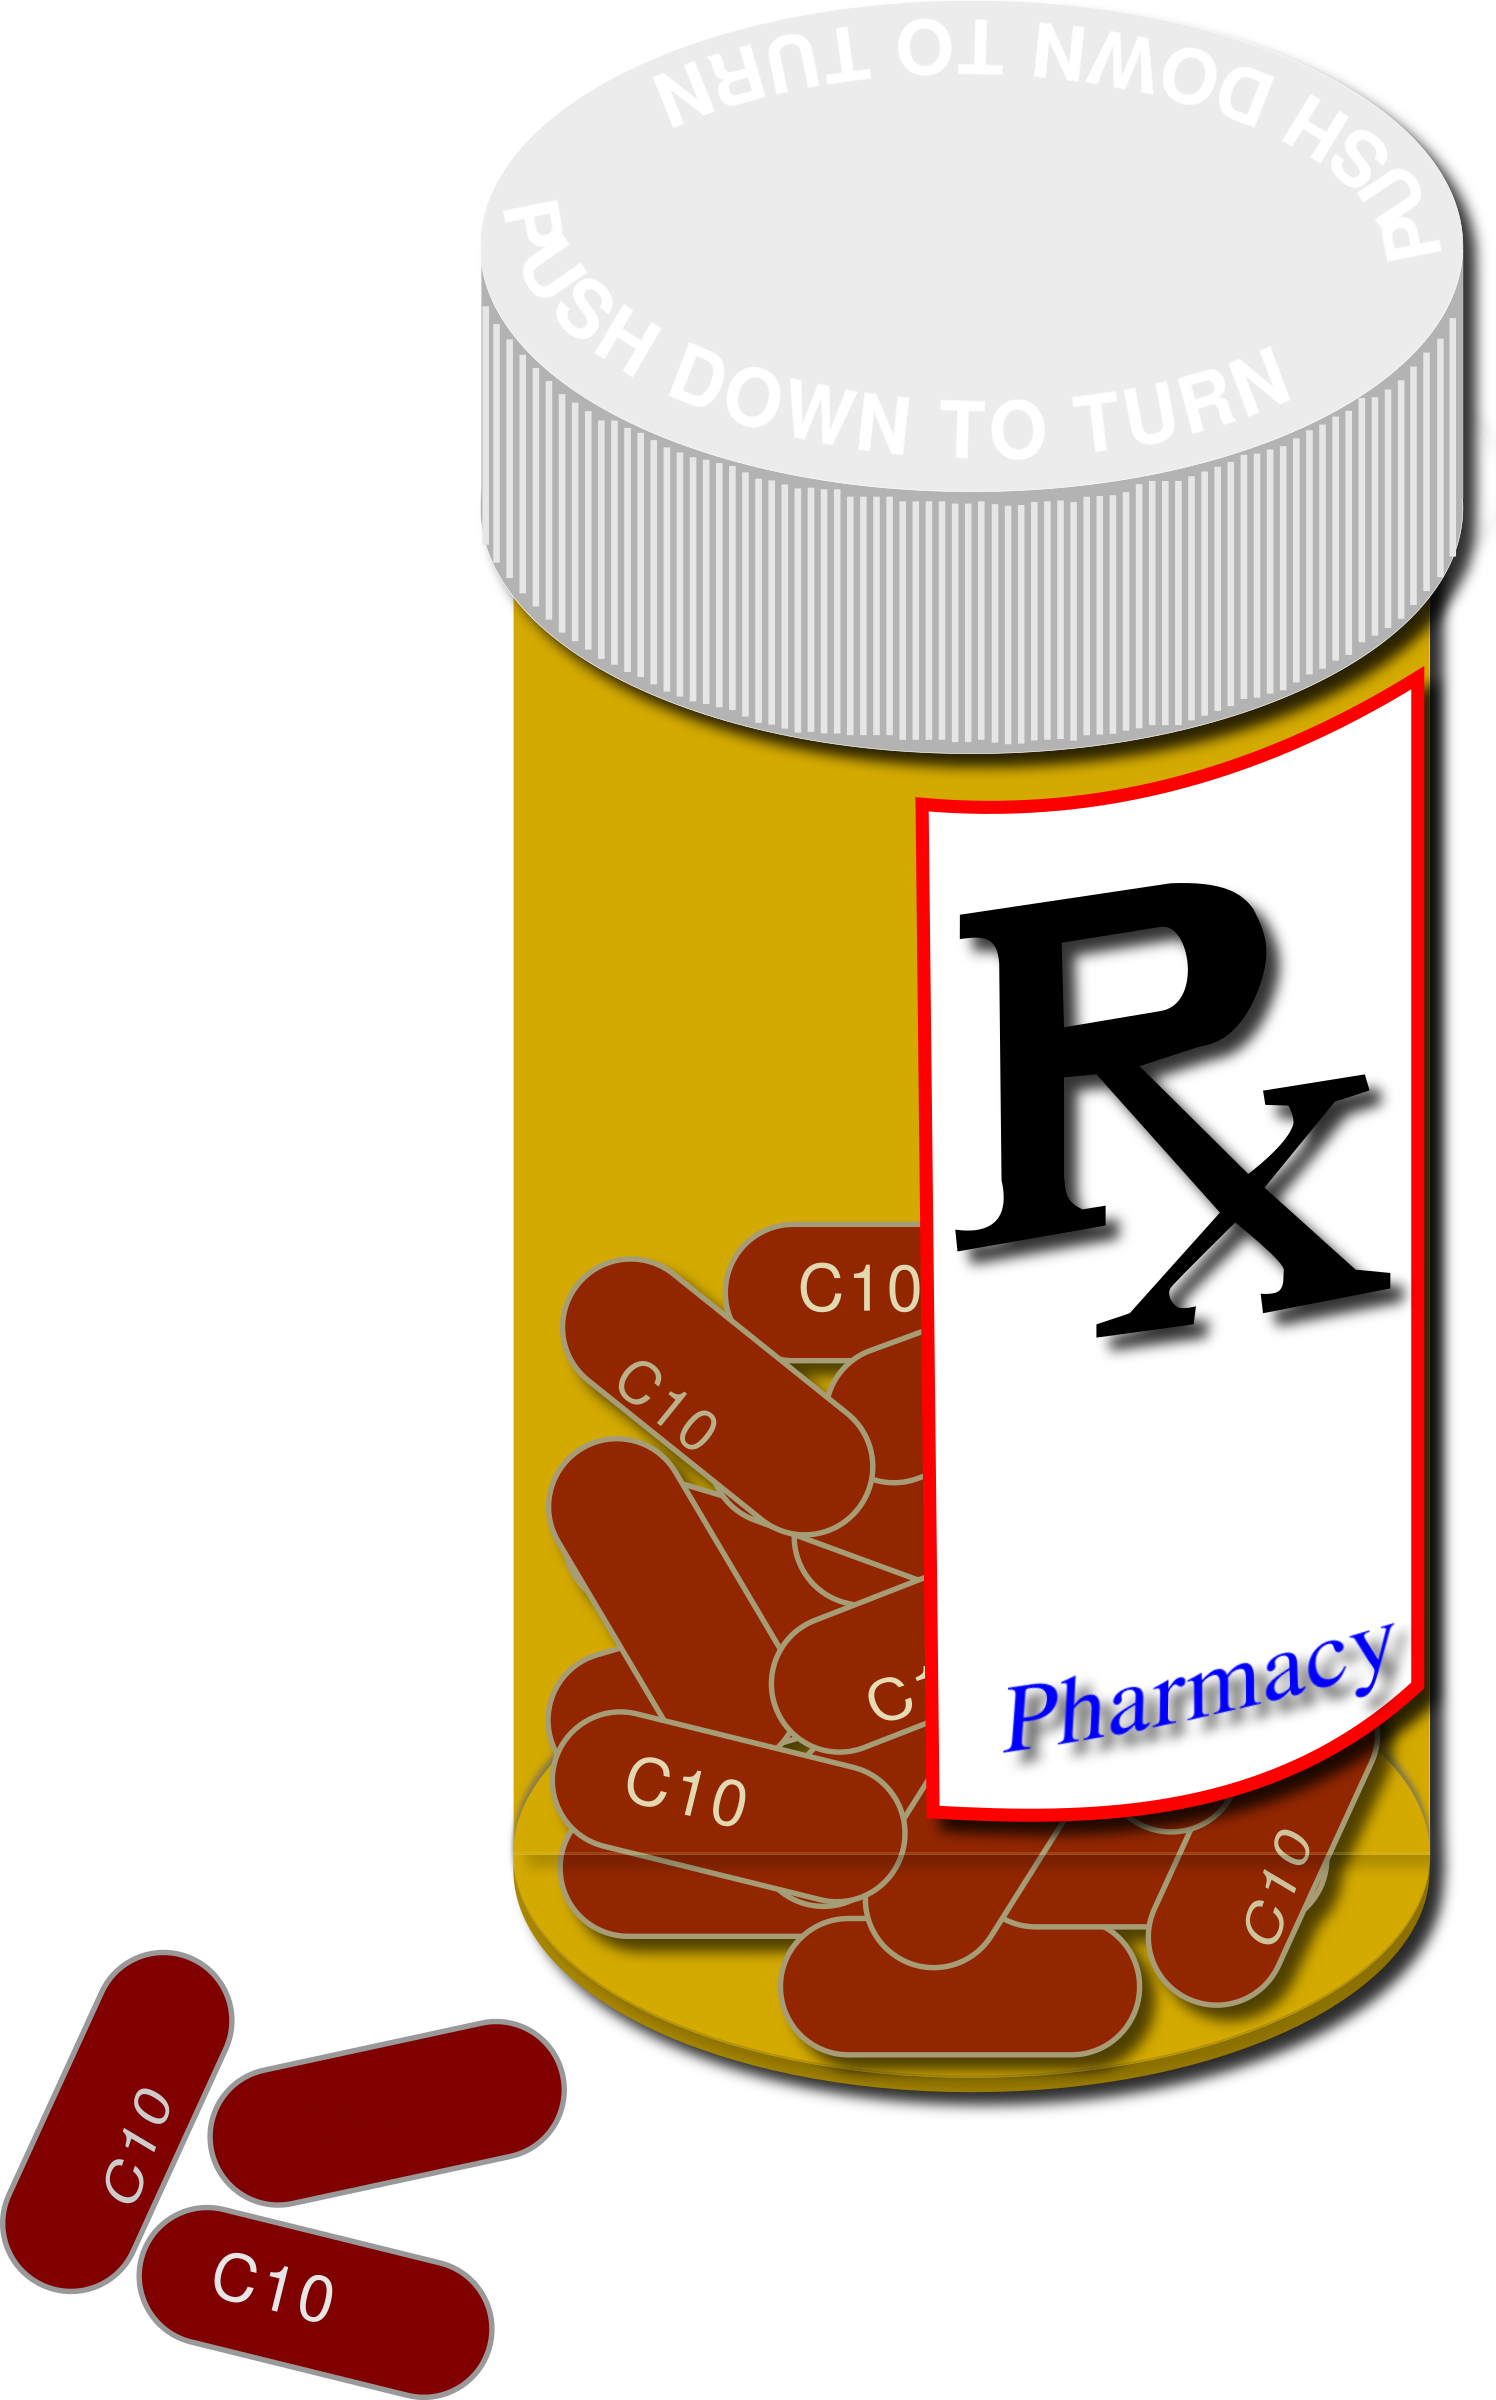 collection of medicines. Medication clipart medecine